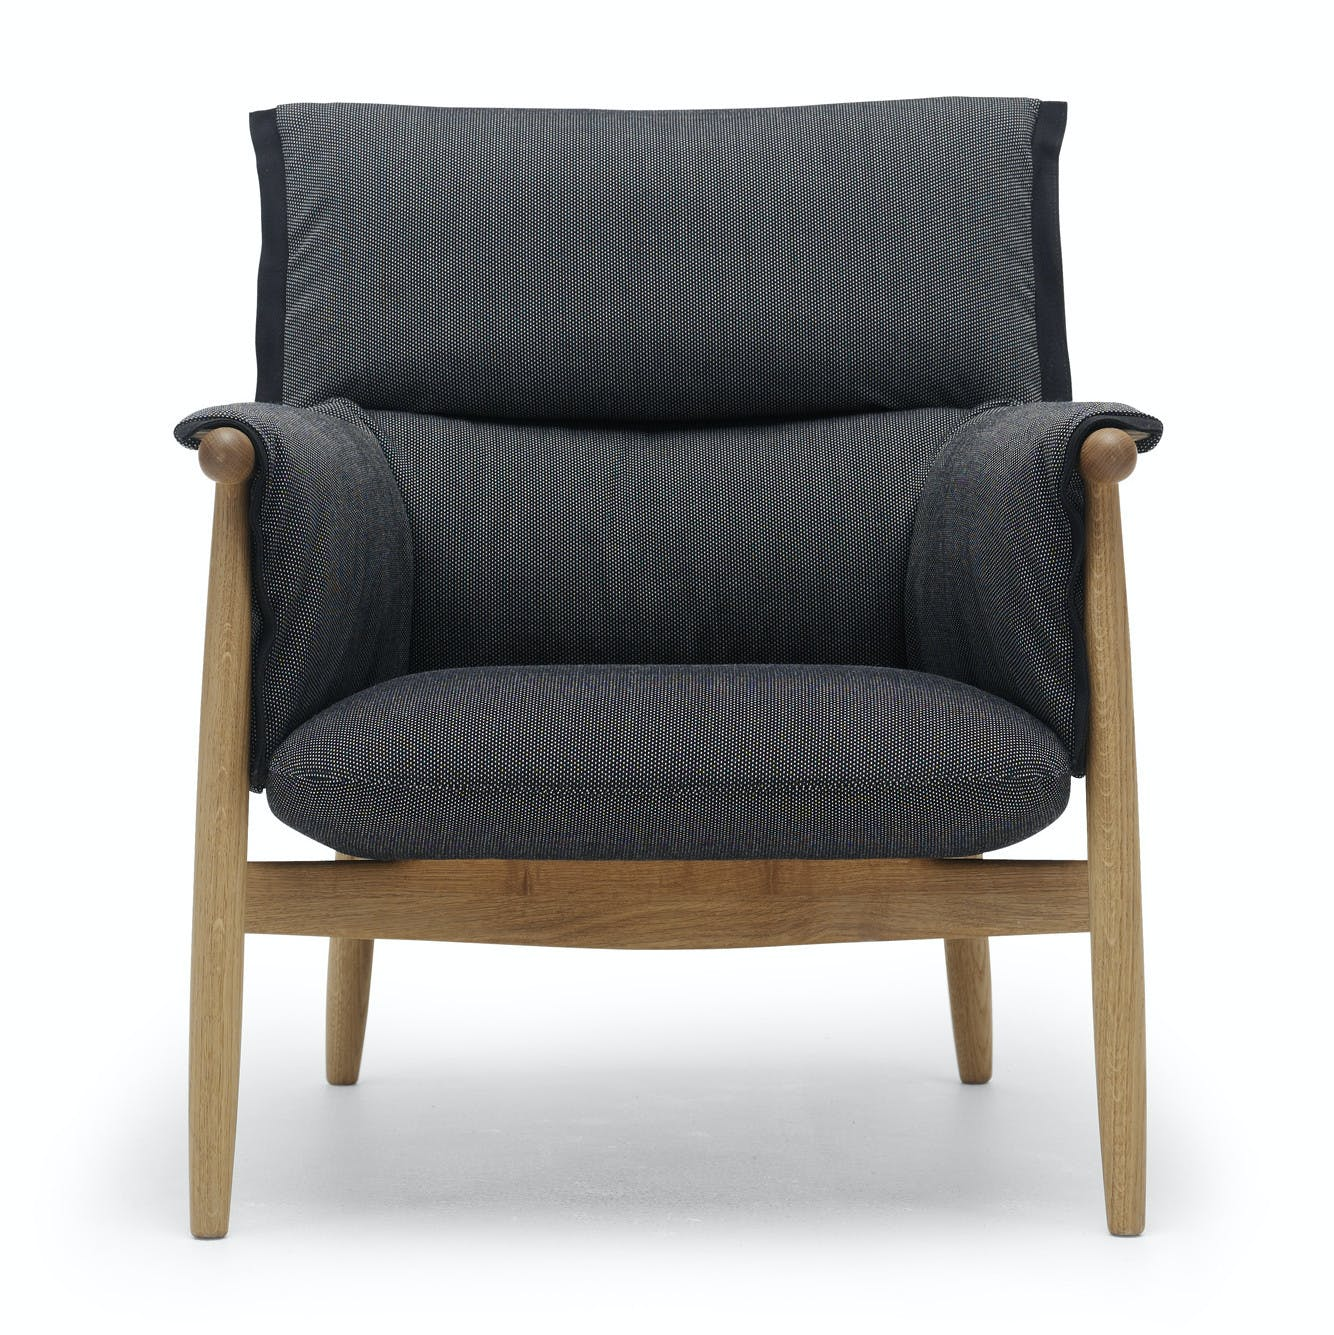 Carl-hansen-son-oak-e015-haute-living